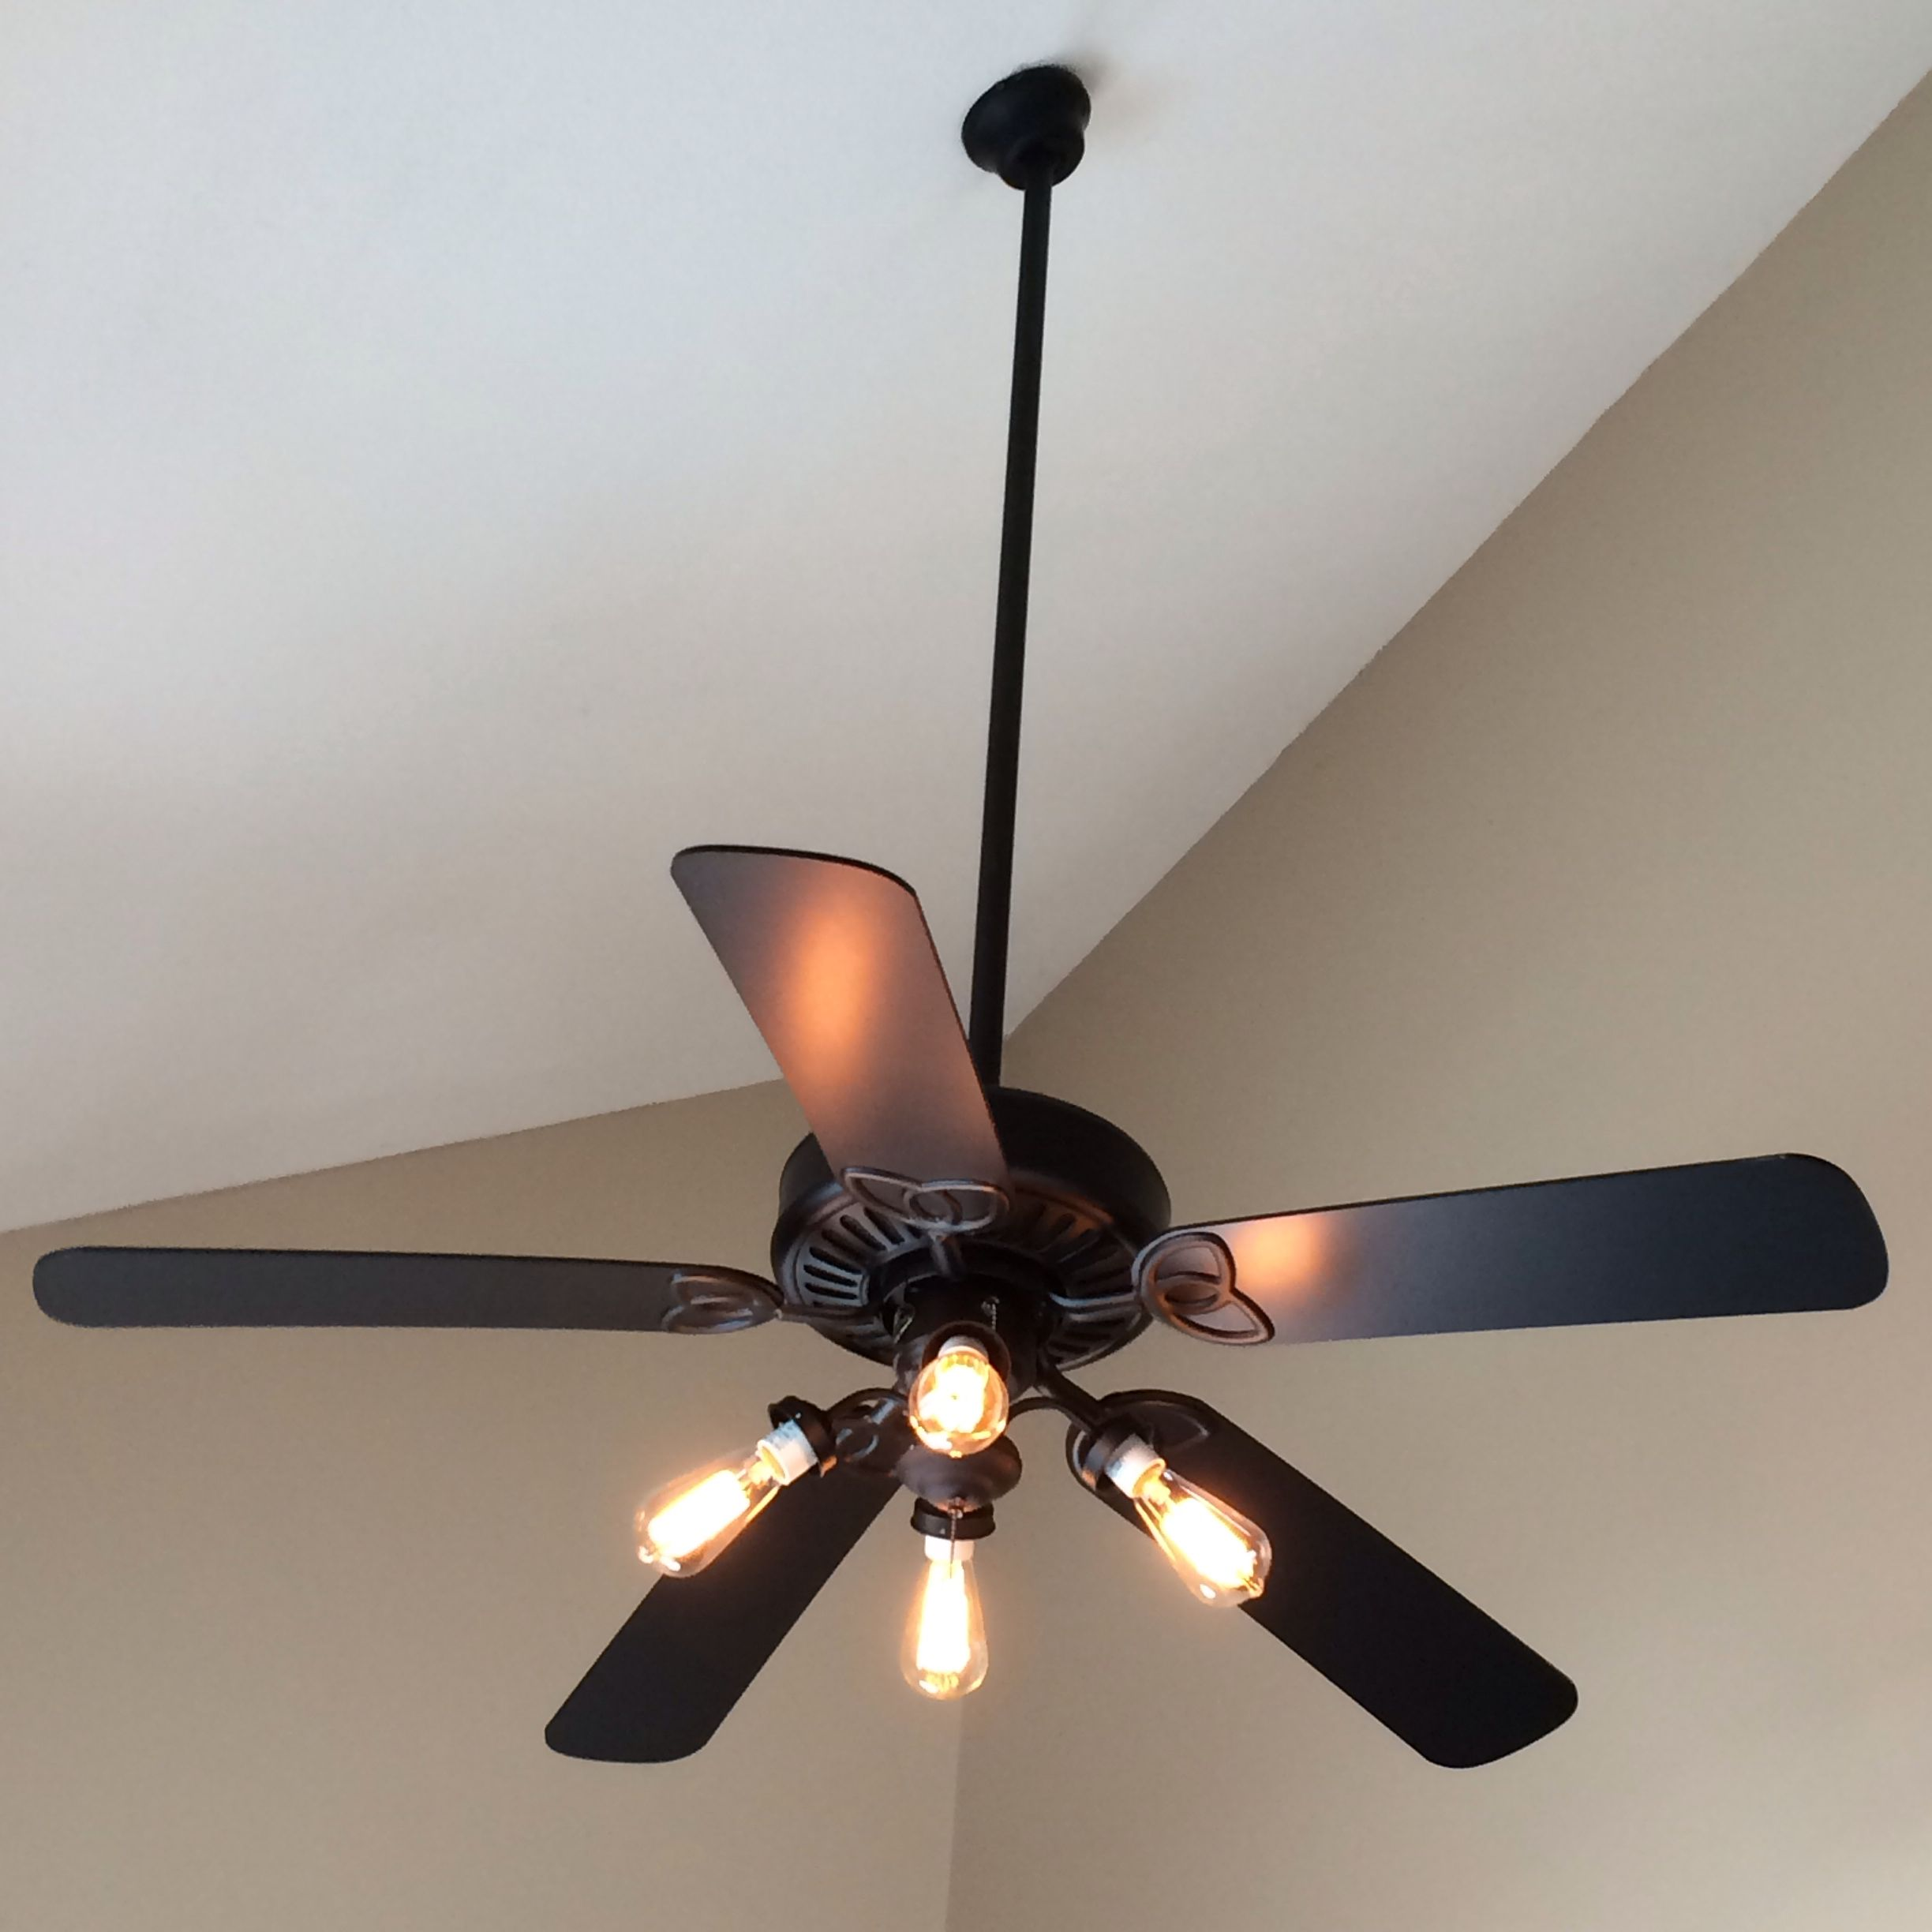 light size fan regular understanding bulbs home sizing with lighting to fans ceiling x bulb base lights guide a within shapes